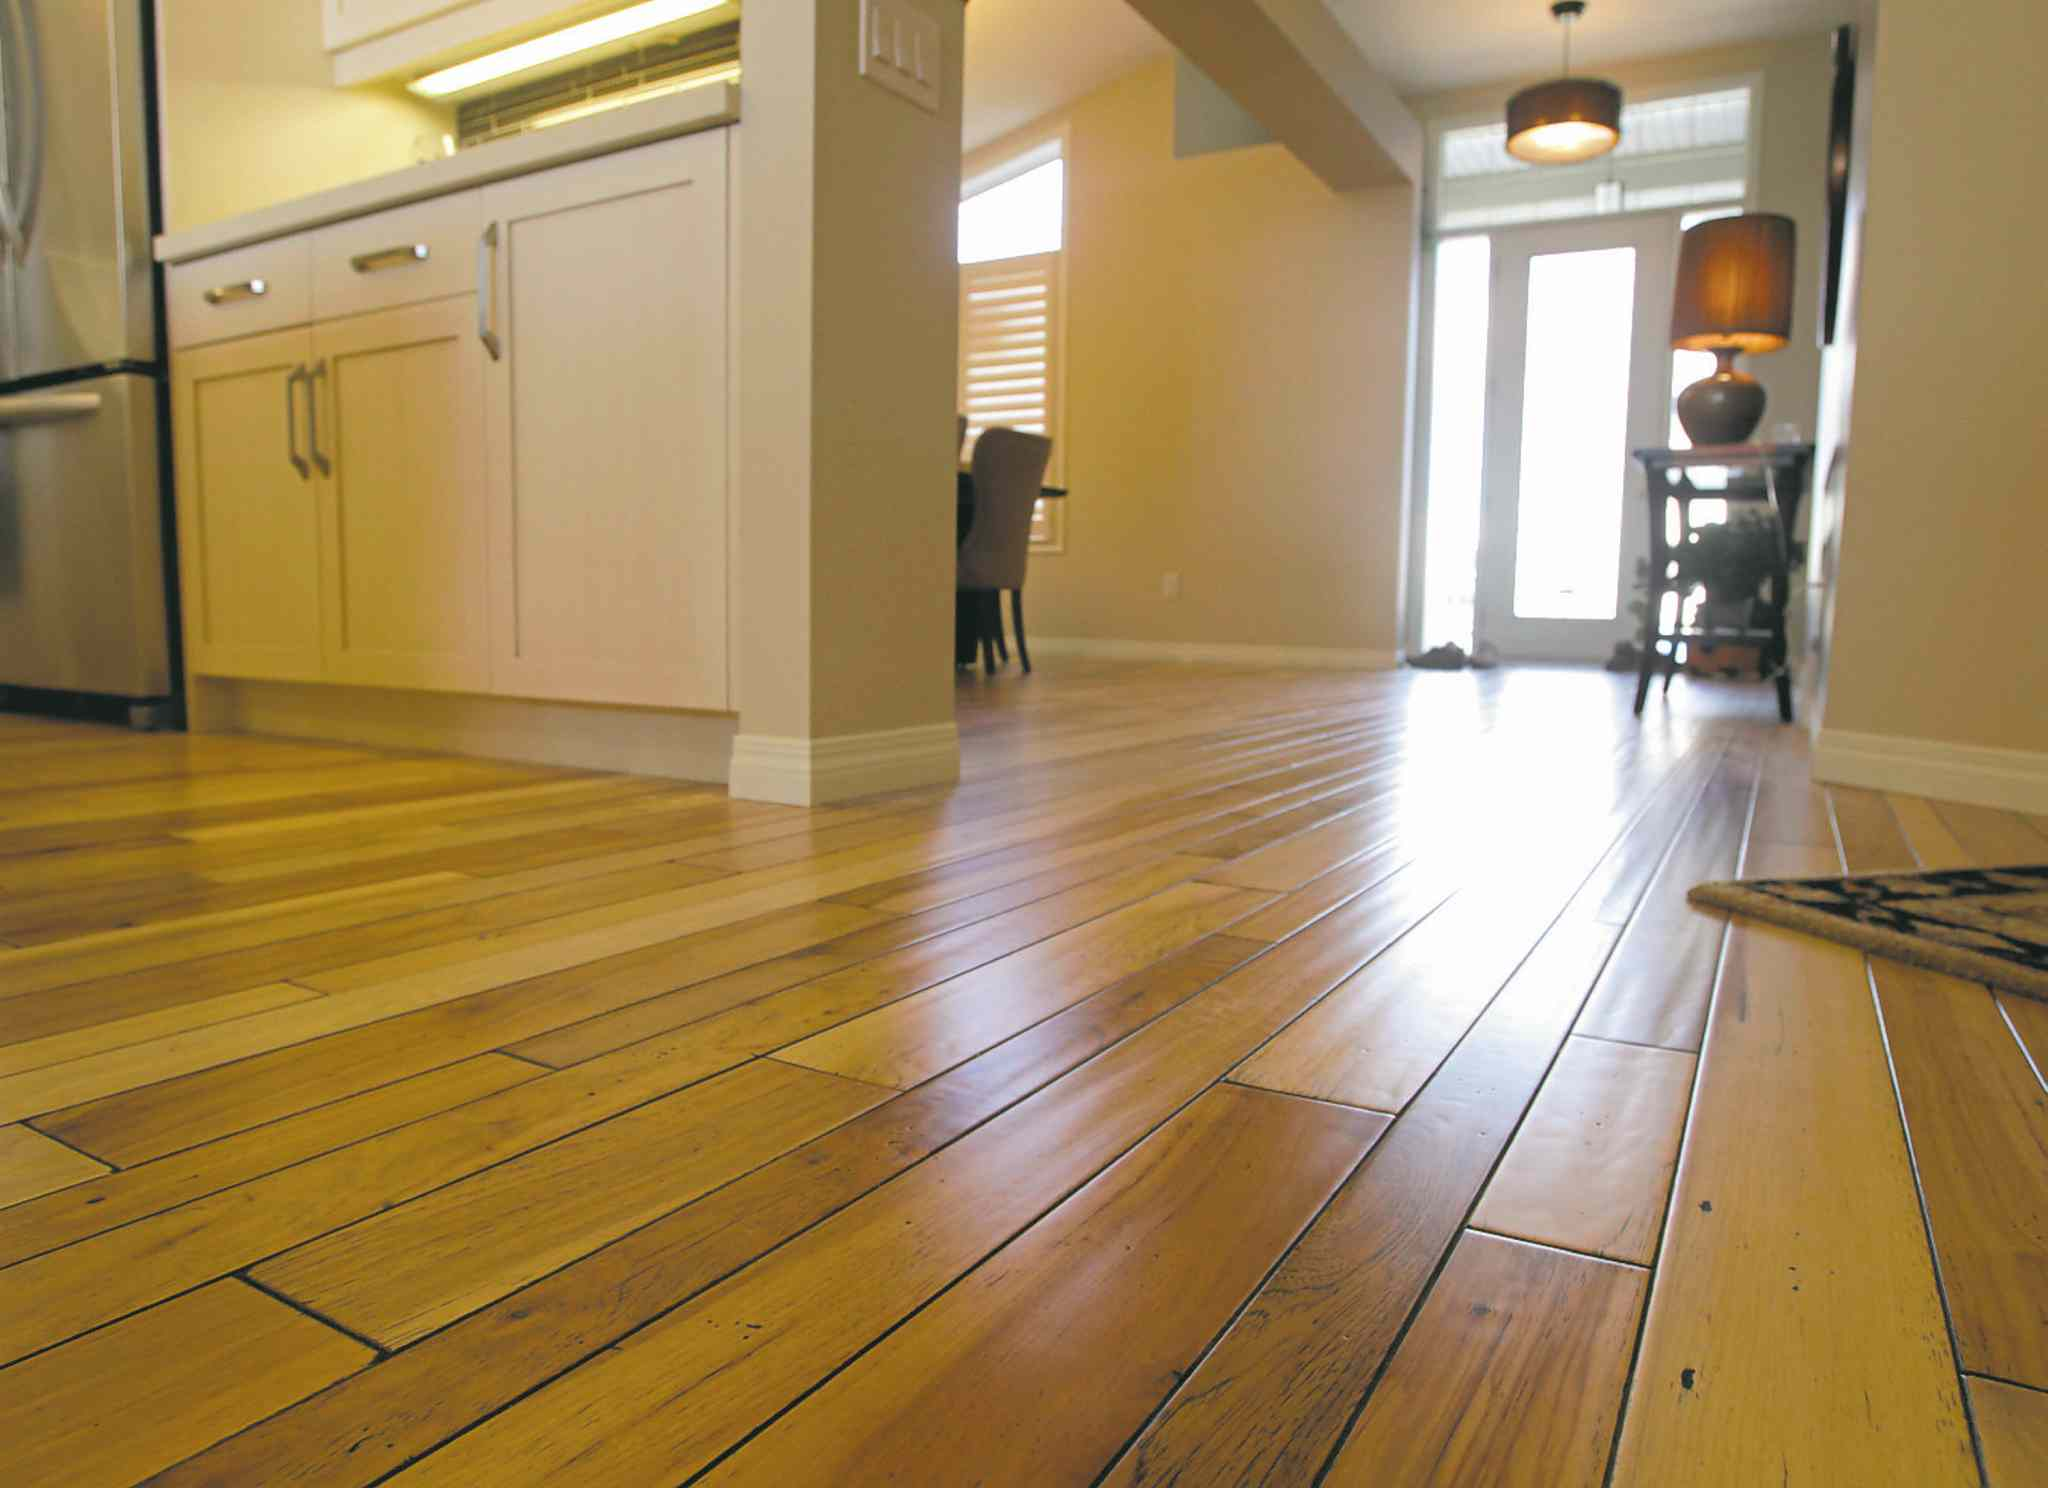 Windex can be effective when cleaning hazy hardwood floors.